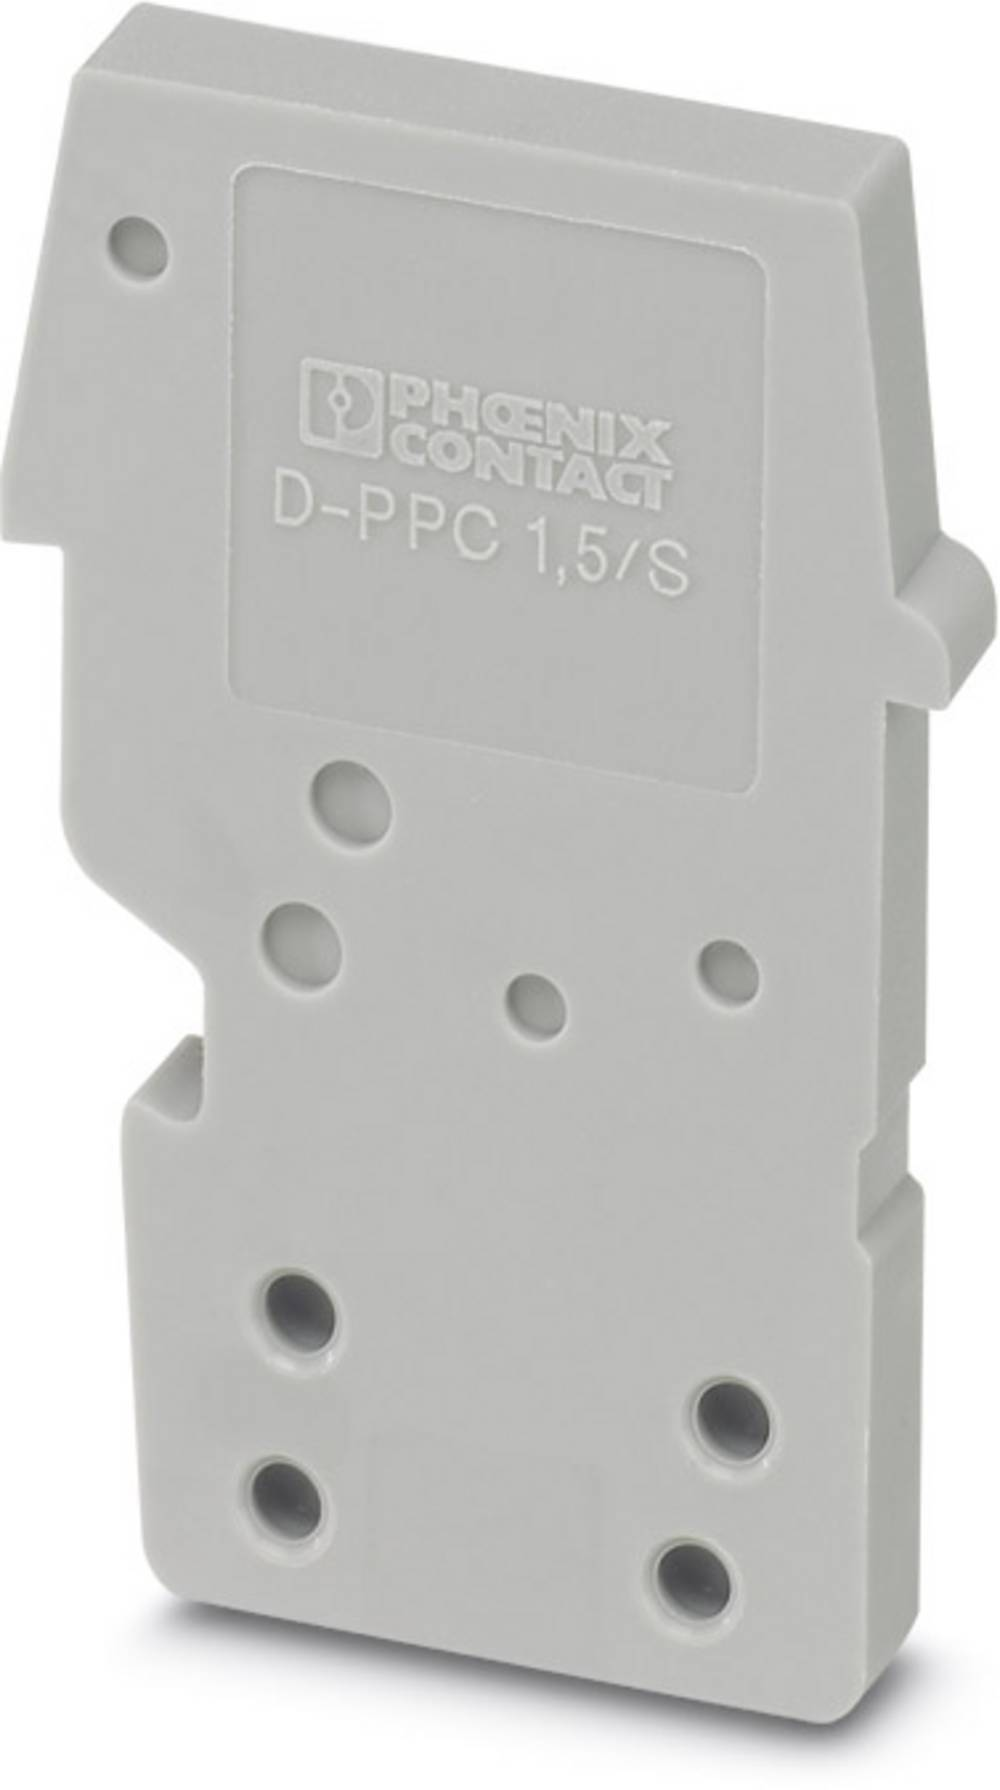 D-PPC 1.5 / S - cover D-PPC 1,5/S Phoenix Contact Indhold: 50 stk